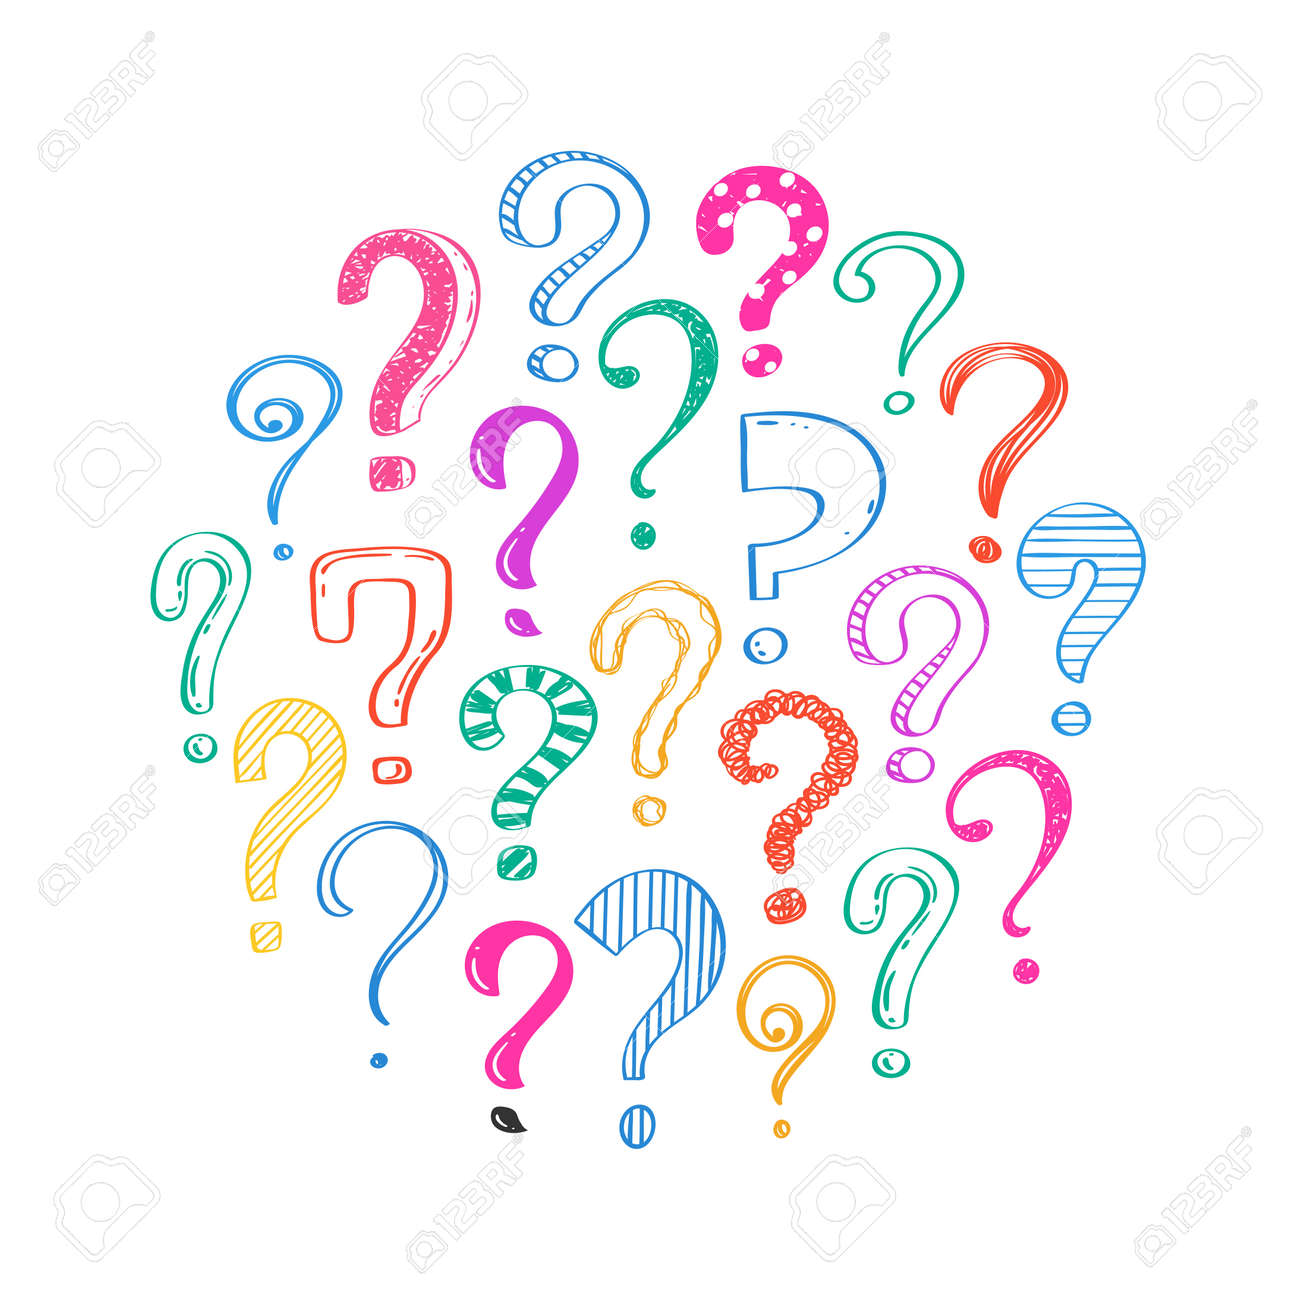 Hand drawn question marks on white background, doodle questions arranged in a circle, vector illustration. - 151018982